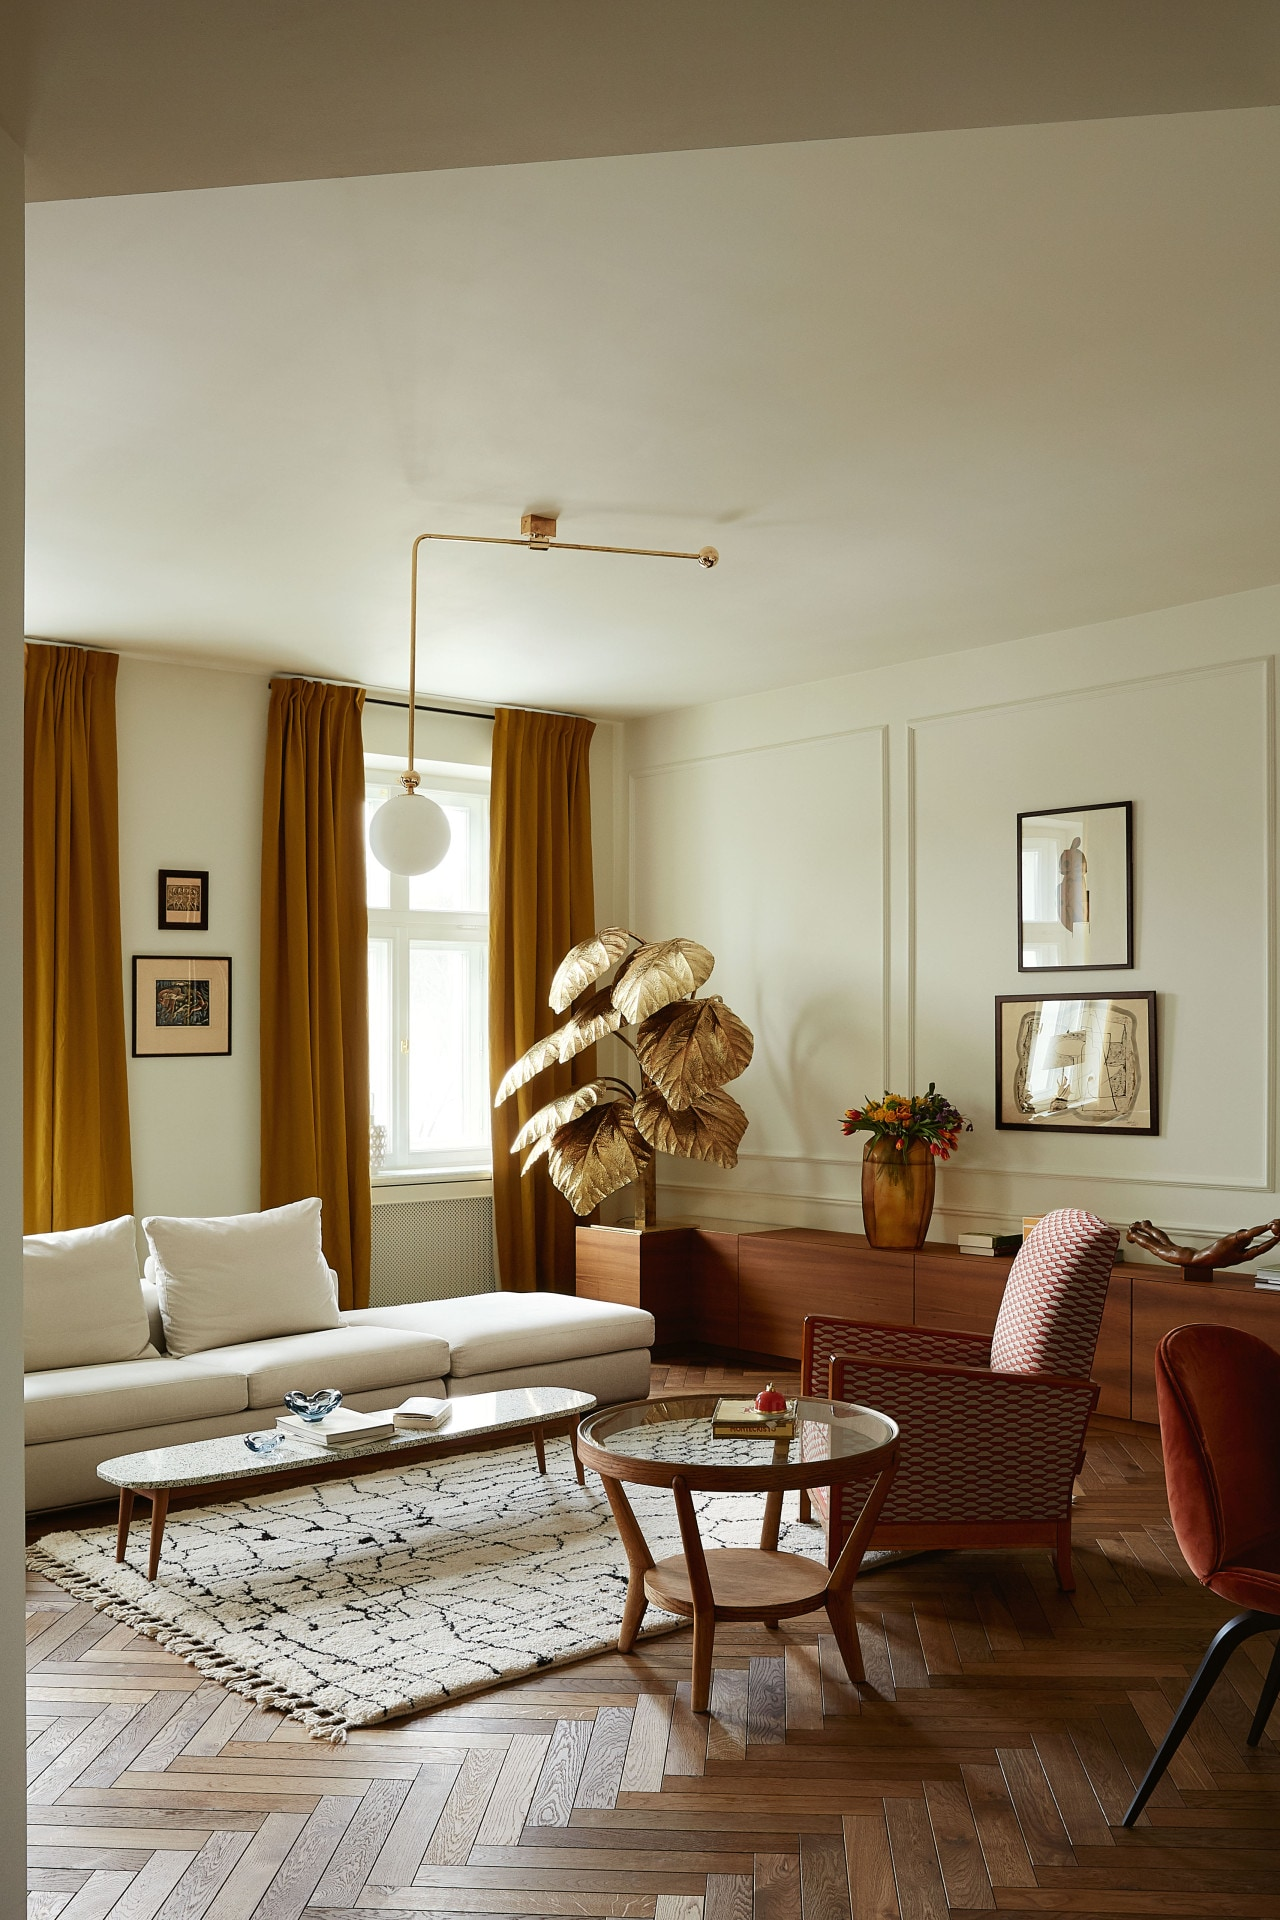 House tour: an elegantly furnished prewar apartment in the heart of Warsaw